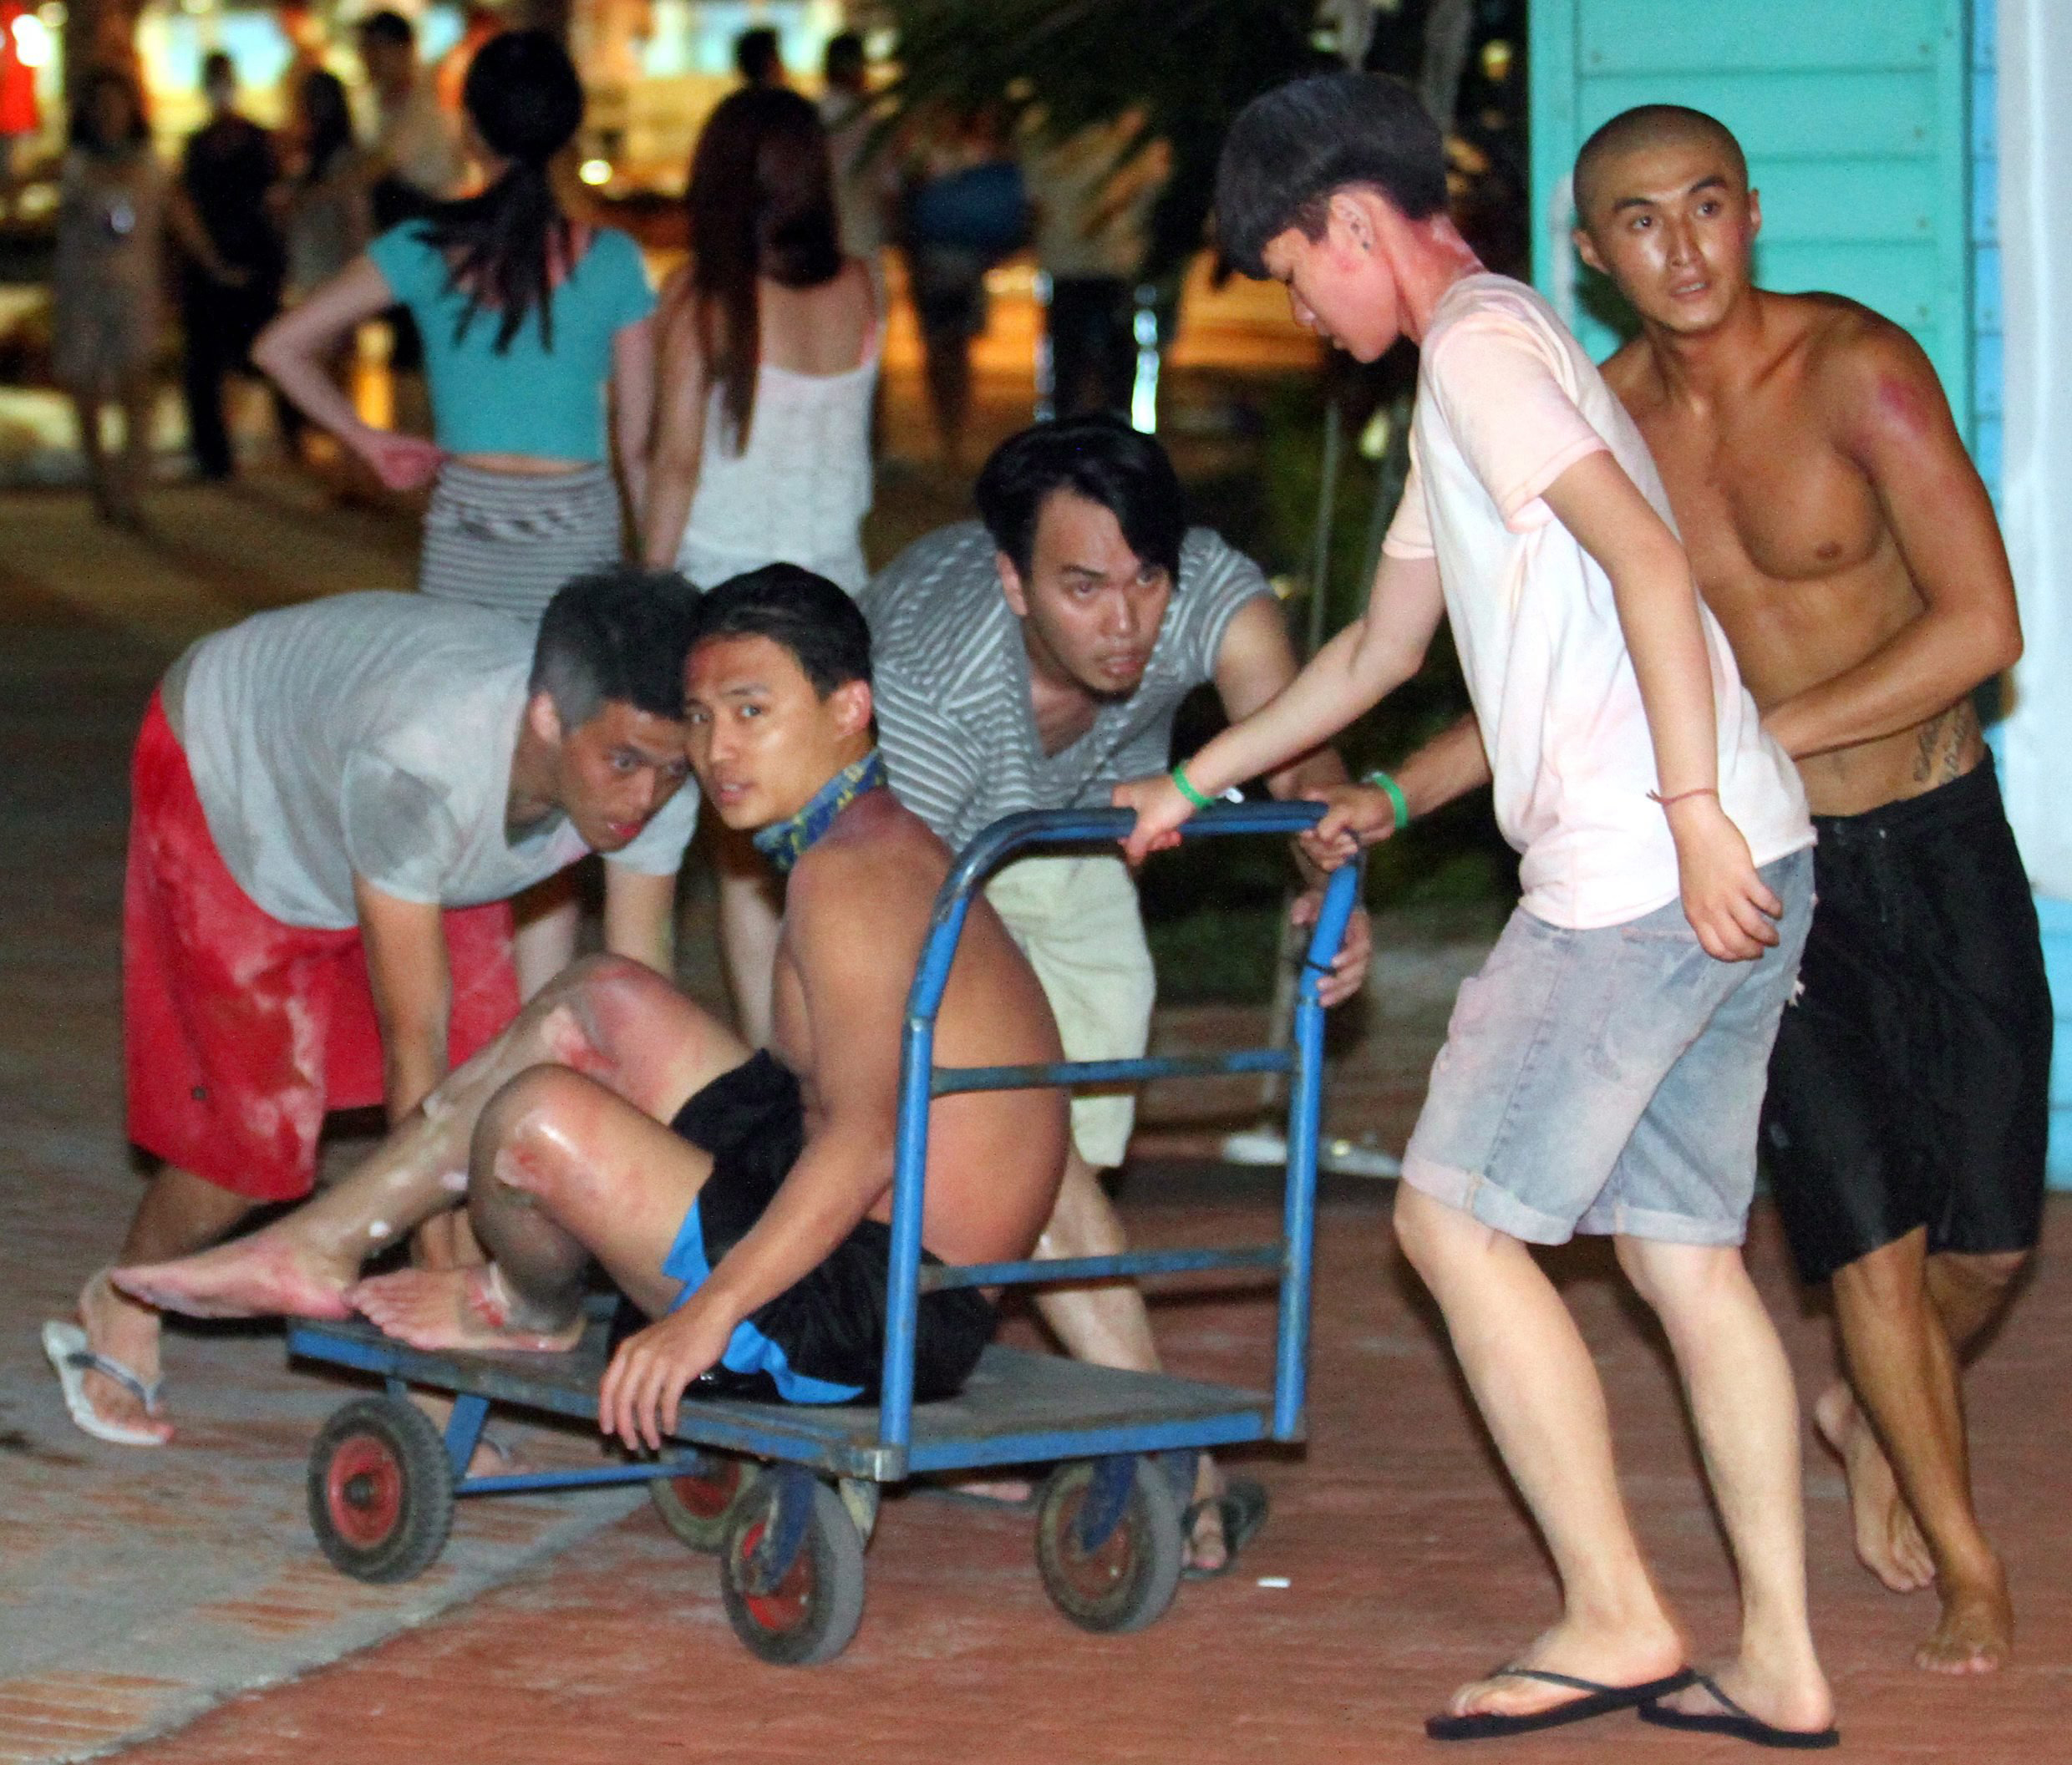 Taiwanese push a young man suffering from burns on his legs to an ambulance at the Formosa Fun Coast park in the Bali District of New Taipei City, northern Taiwan, June 27, 2015.